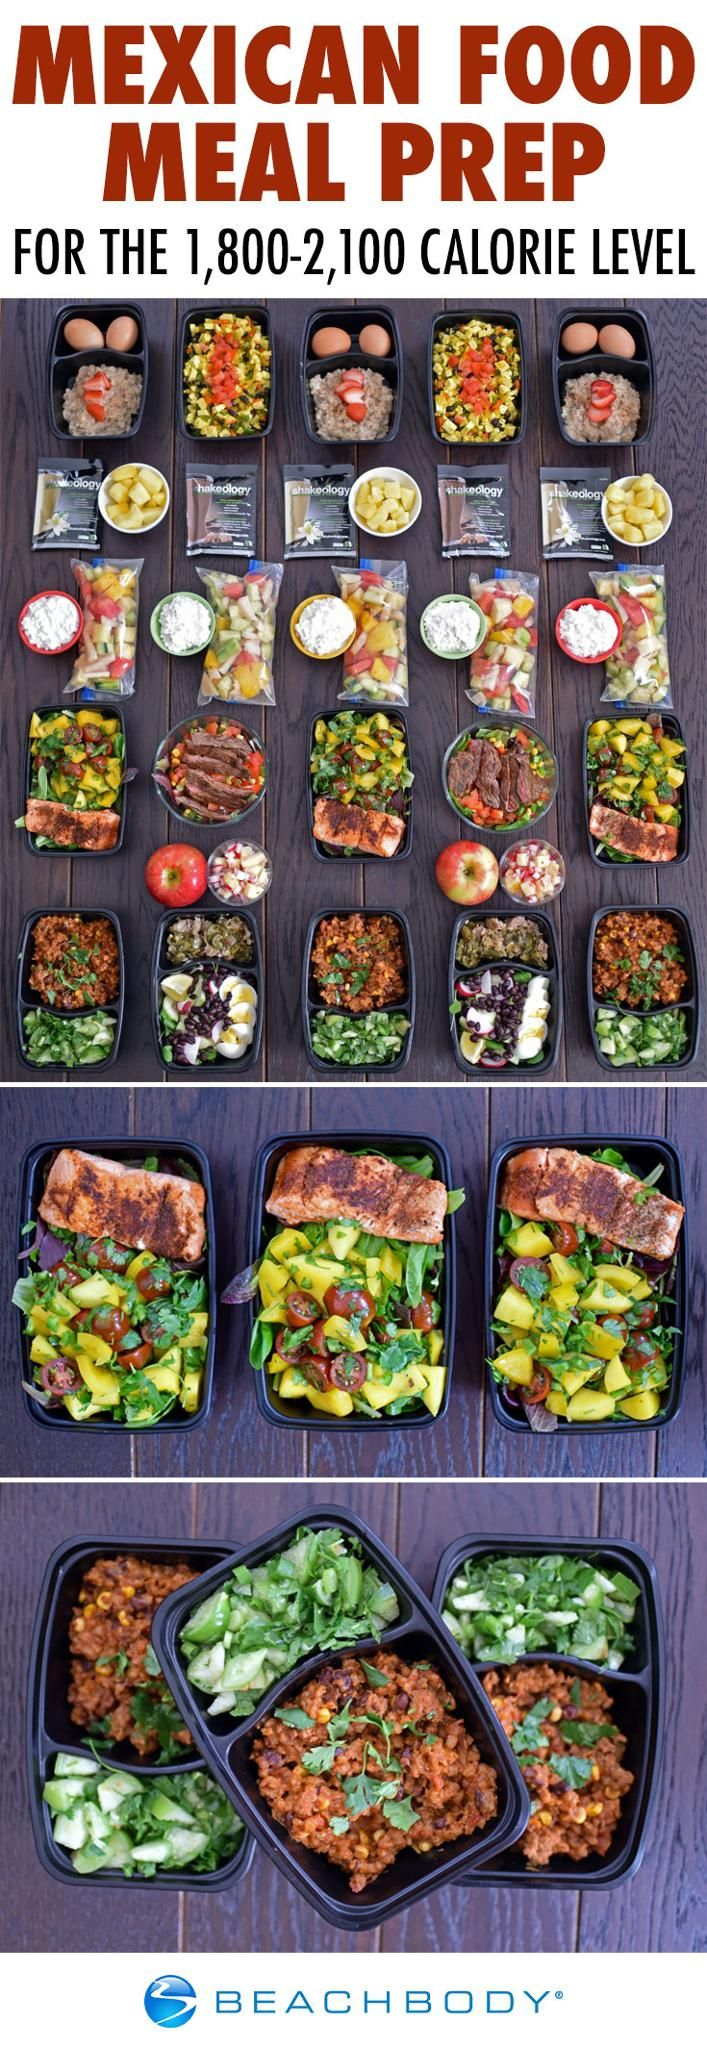 Mexican Food Meal Prep For The 1,800–2,100 Calorie Level